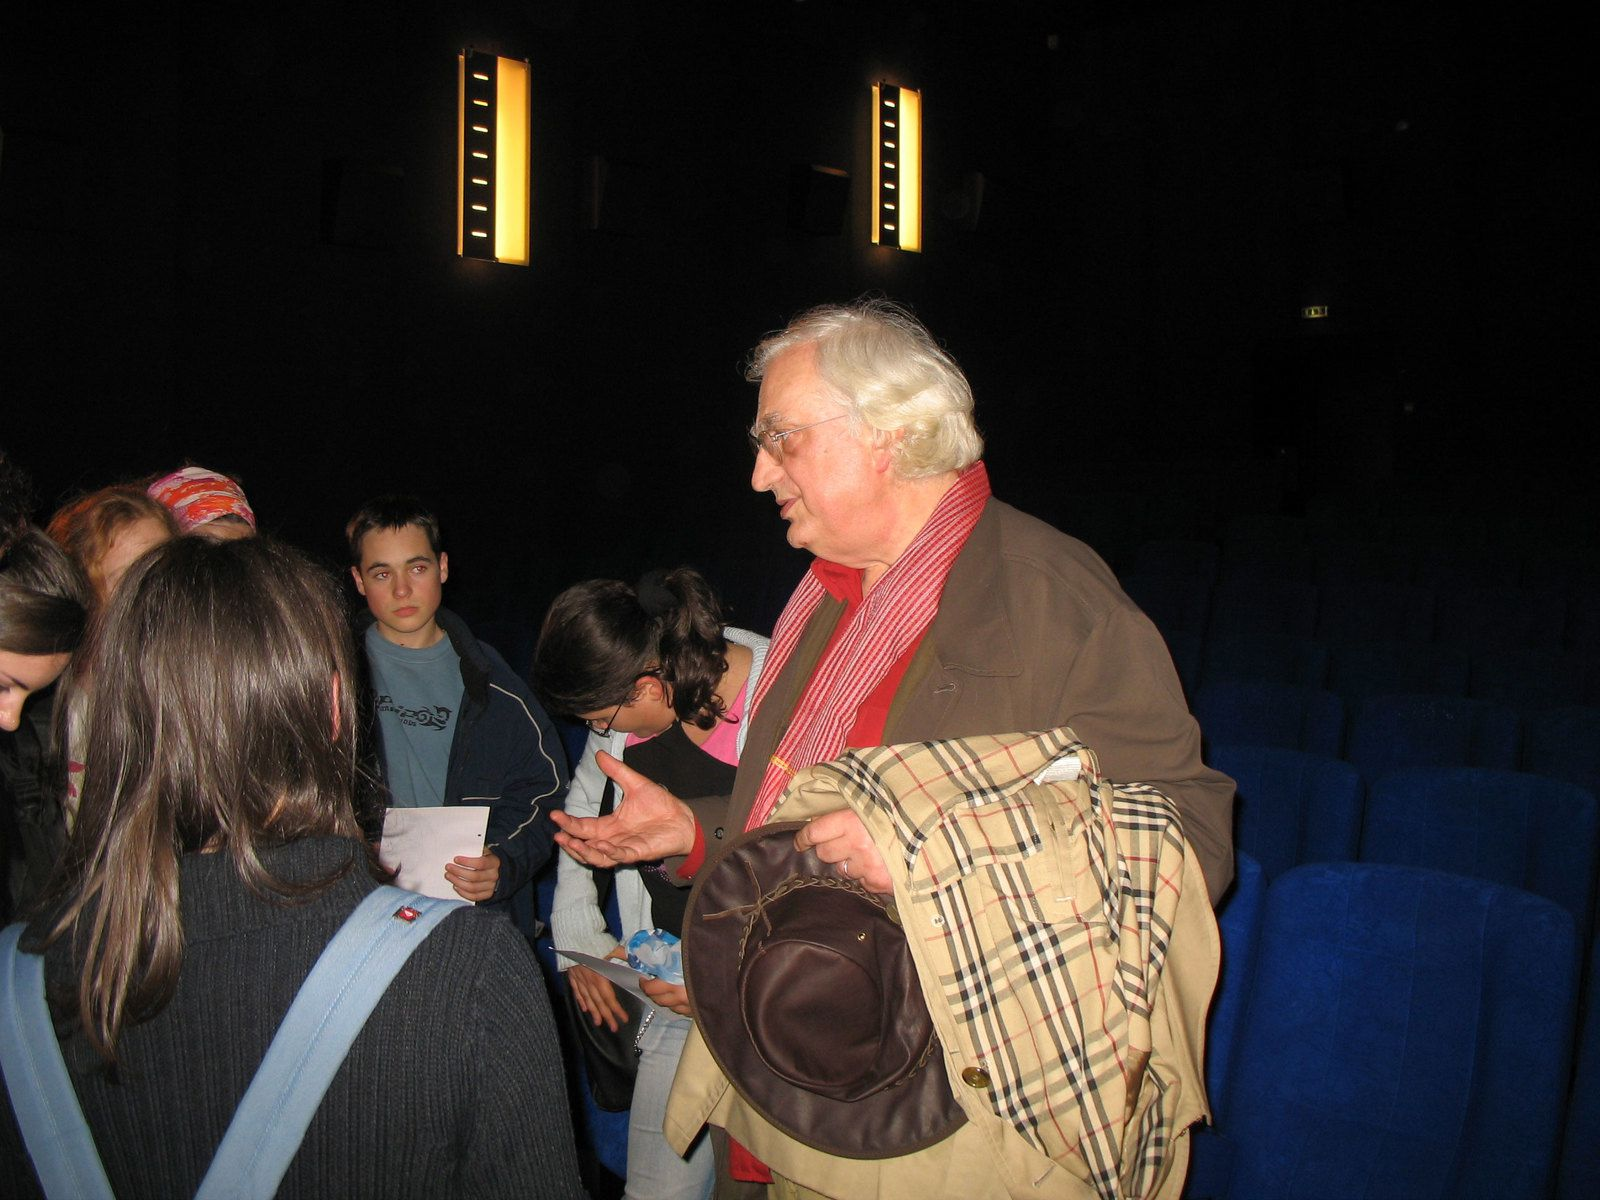 BERTRAND TAVERNIER A DINAN (2006) (PHOTOS)